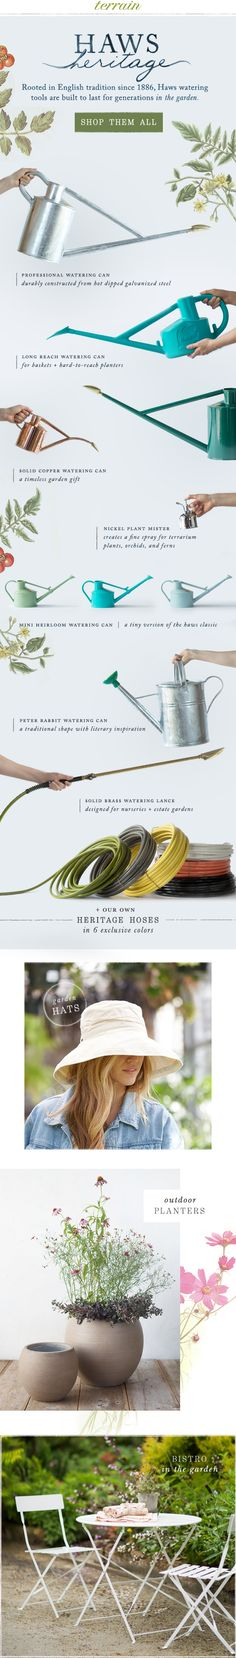 #Haws heritage #watering cans at #shopterrain August 5